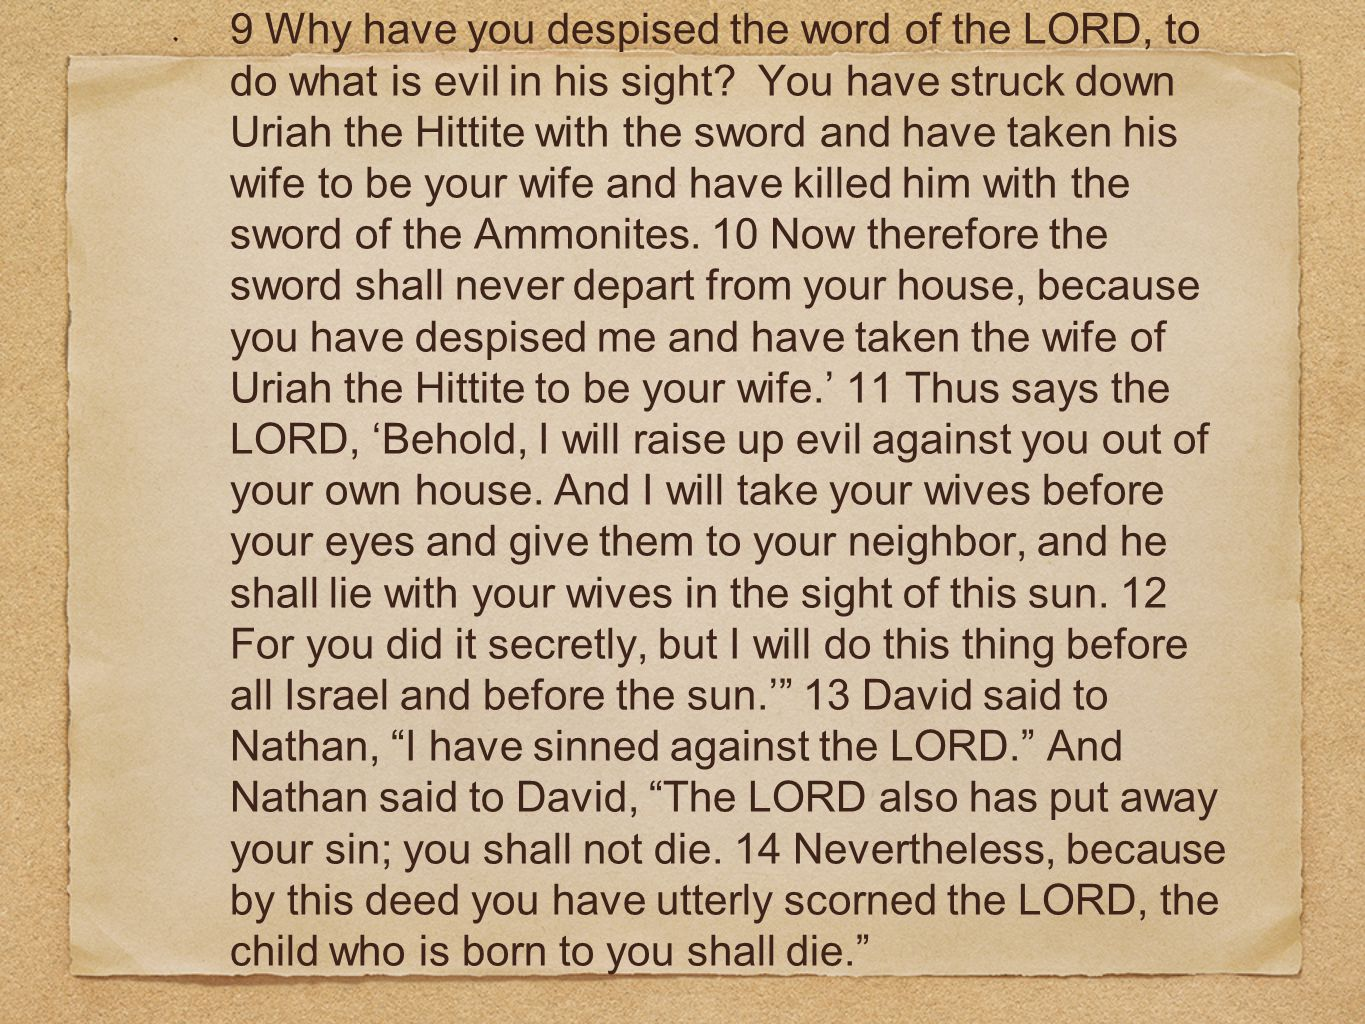 9 Why have you despised the word of the LORD, to do what is evil in his sight.